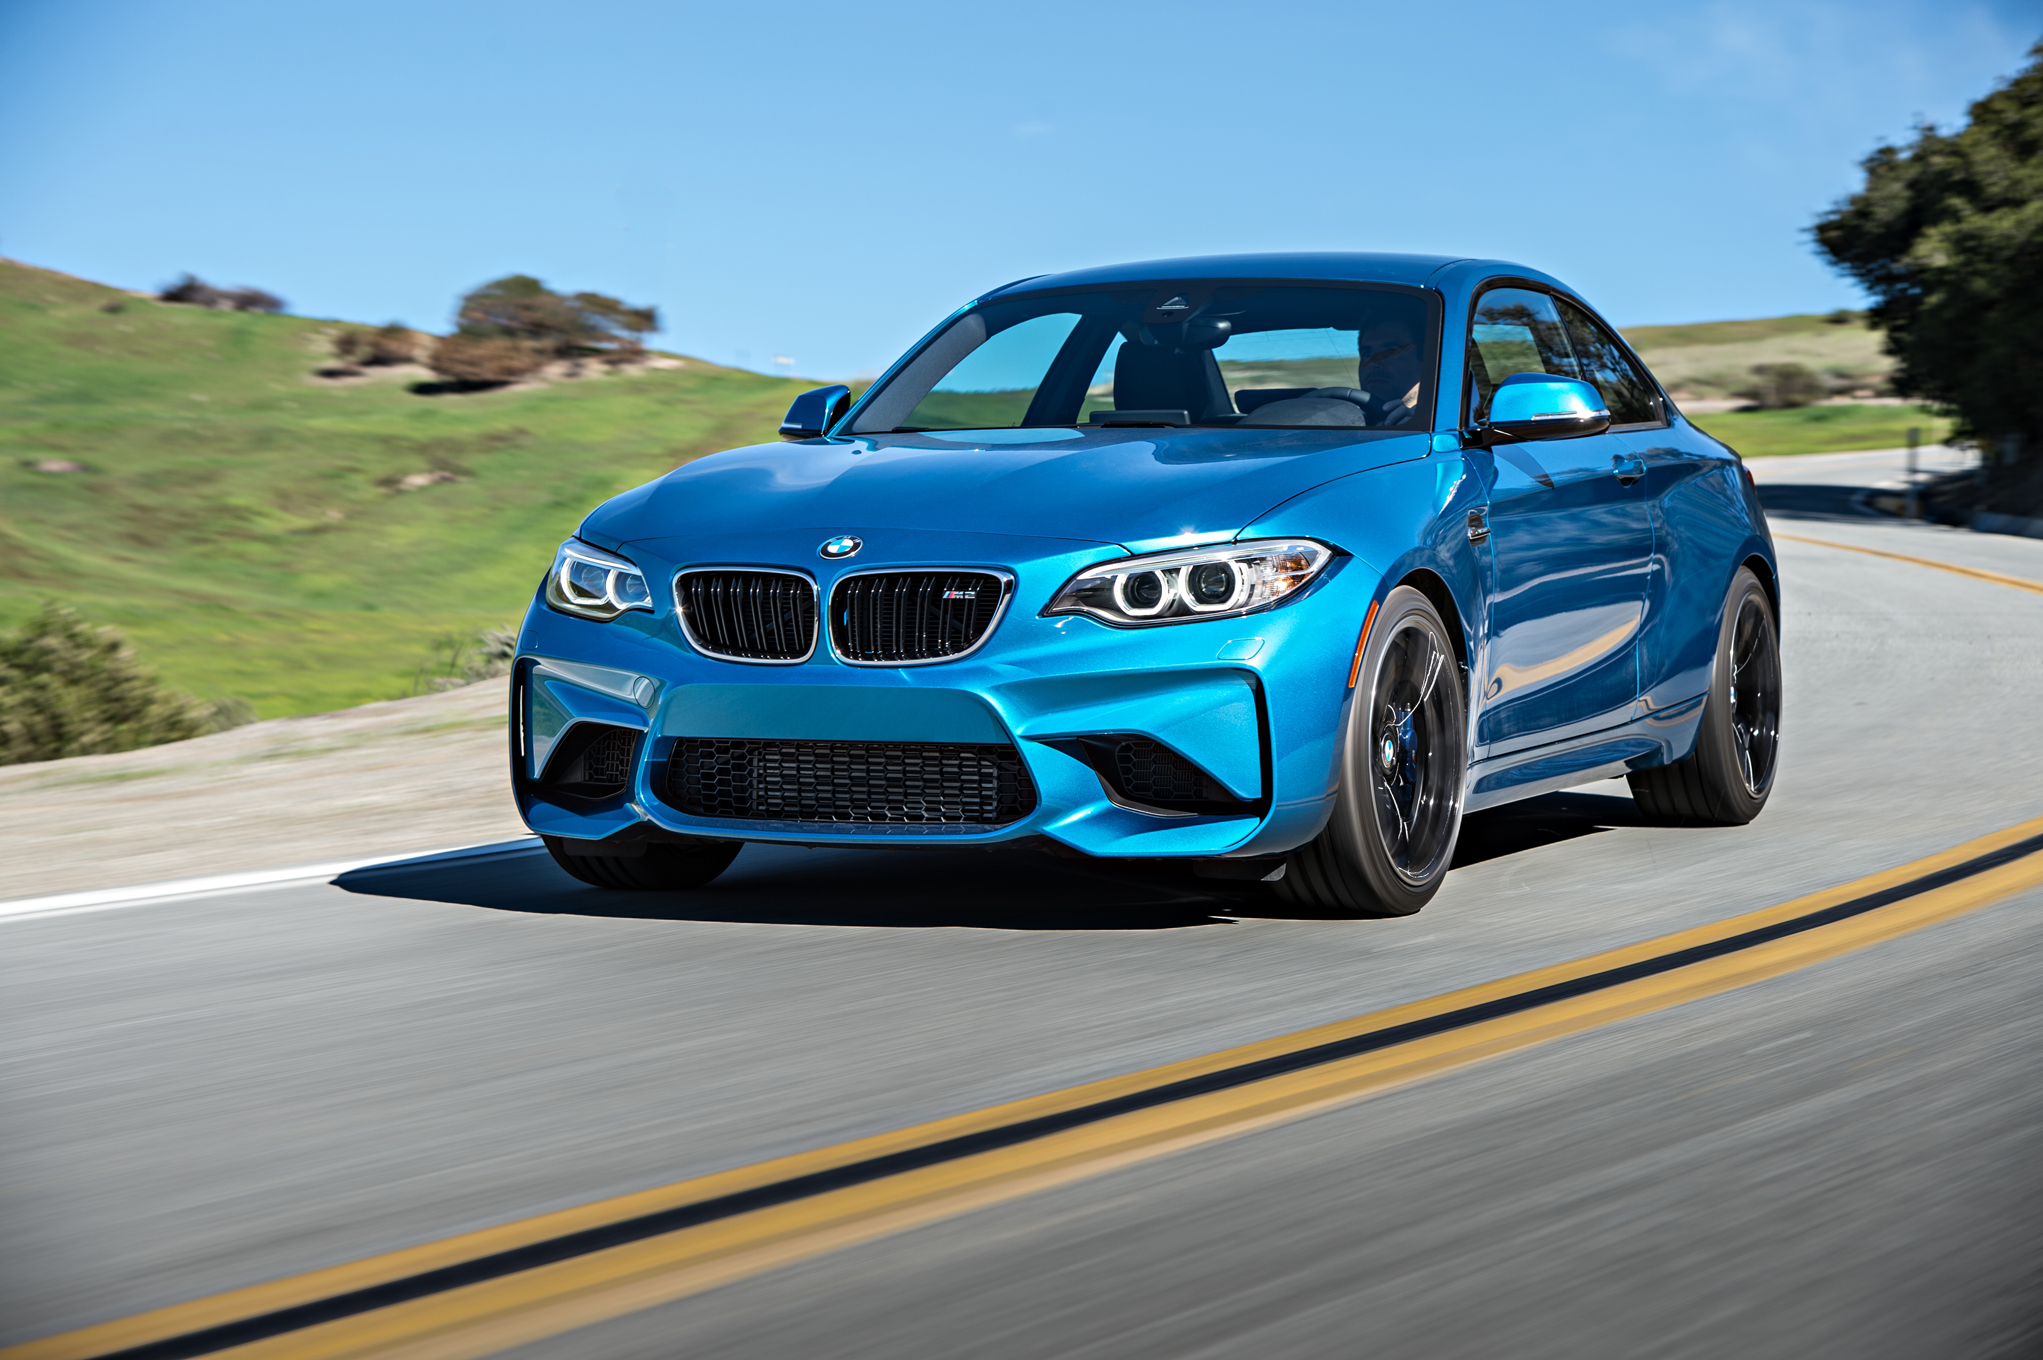 2016 BMW M2 Pictures Gallery (61 Images)